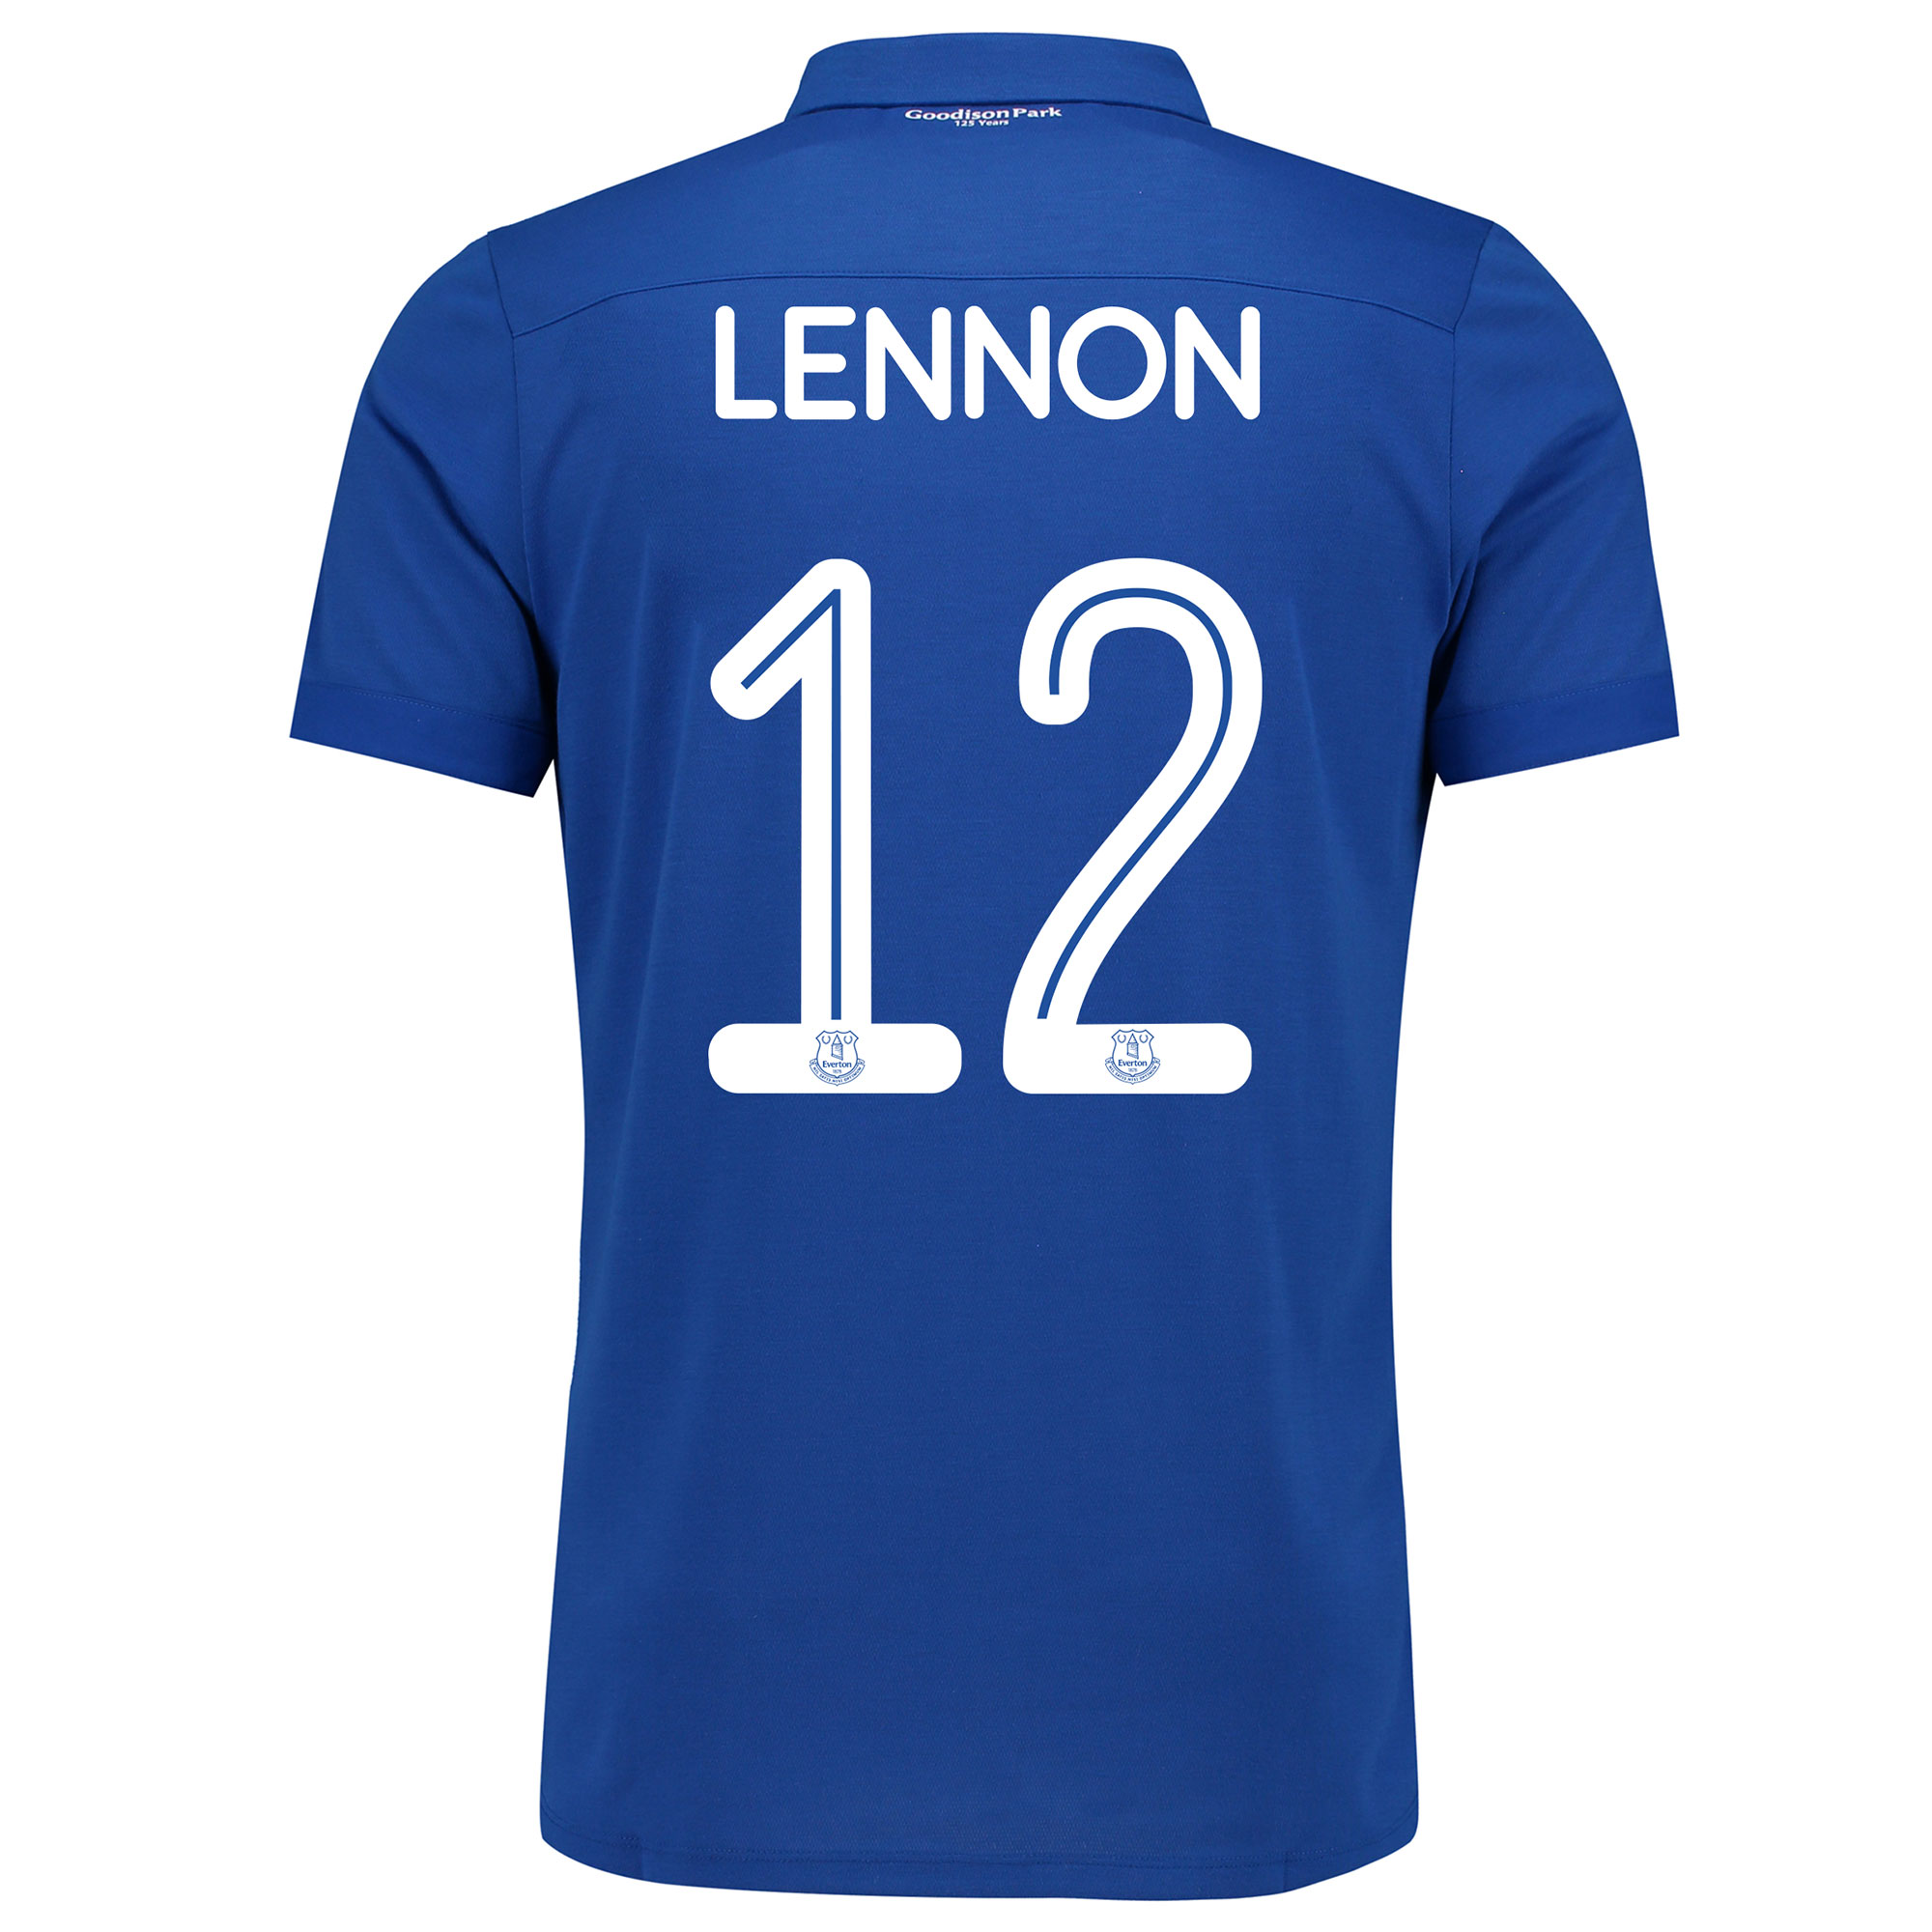 Image of Everton Commemorative Shirt - Junior with Lennon 12 printing